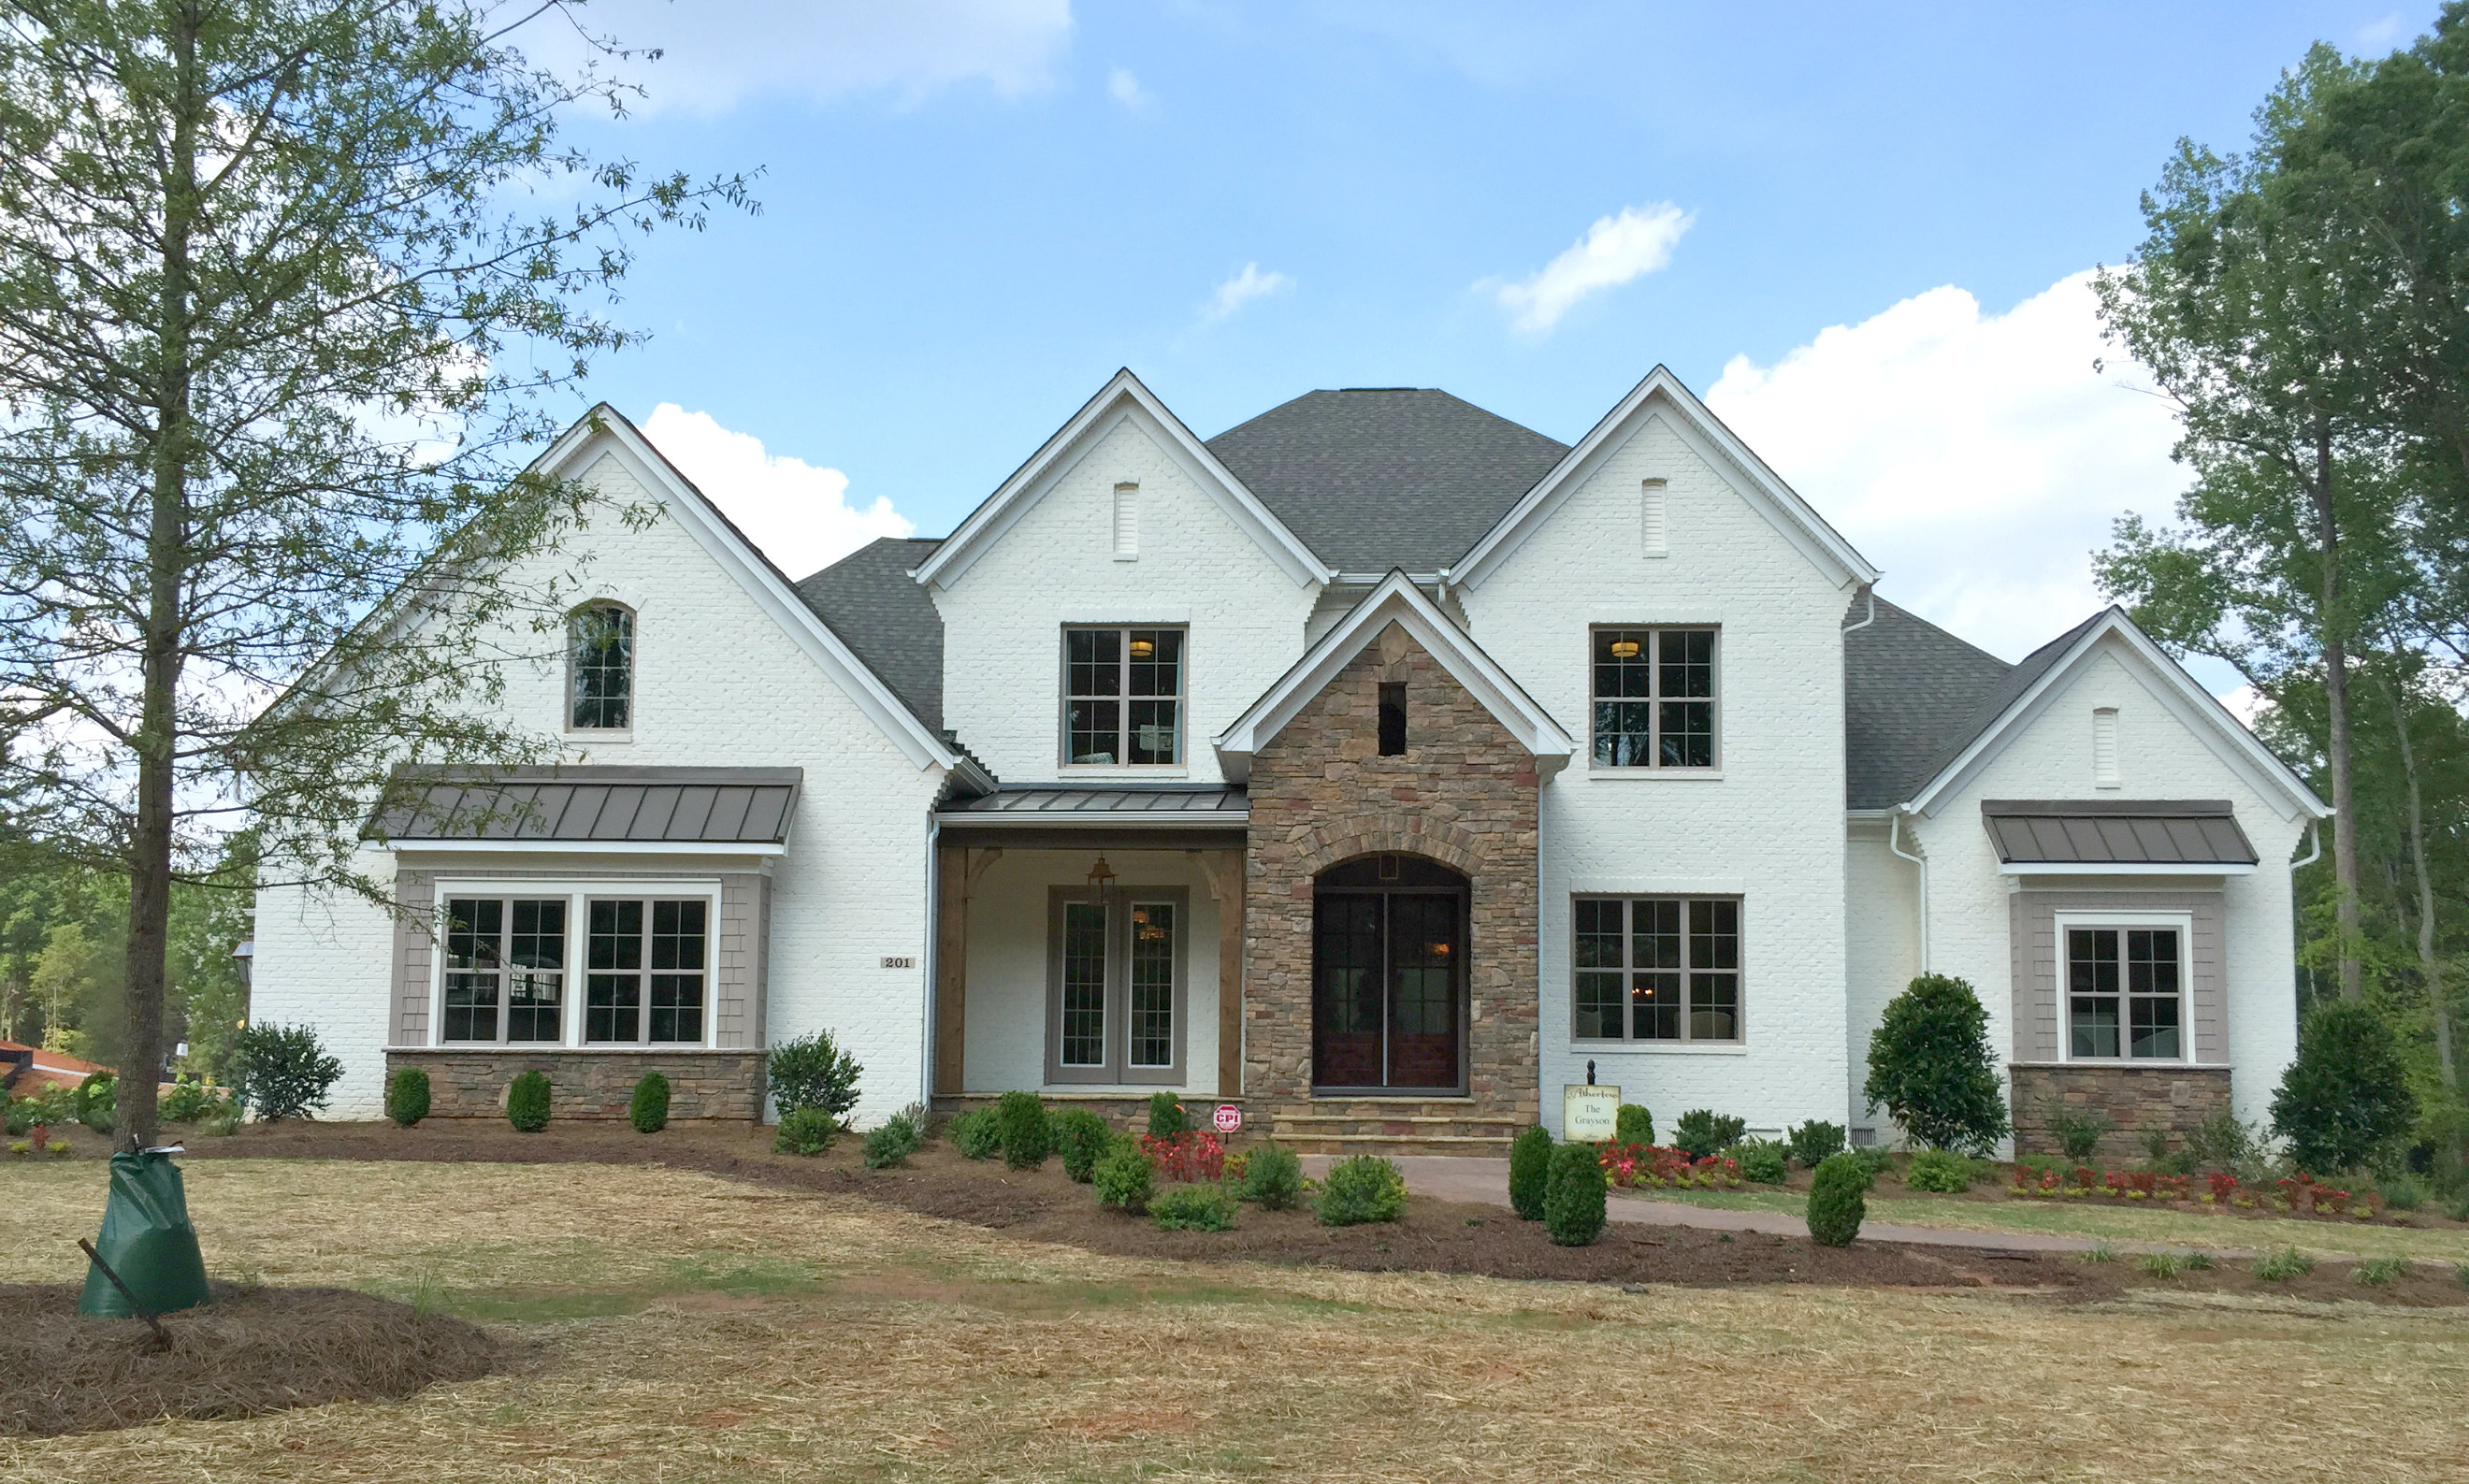 Atherton estates charlotte home seeker for The atherton